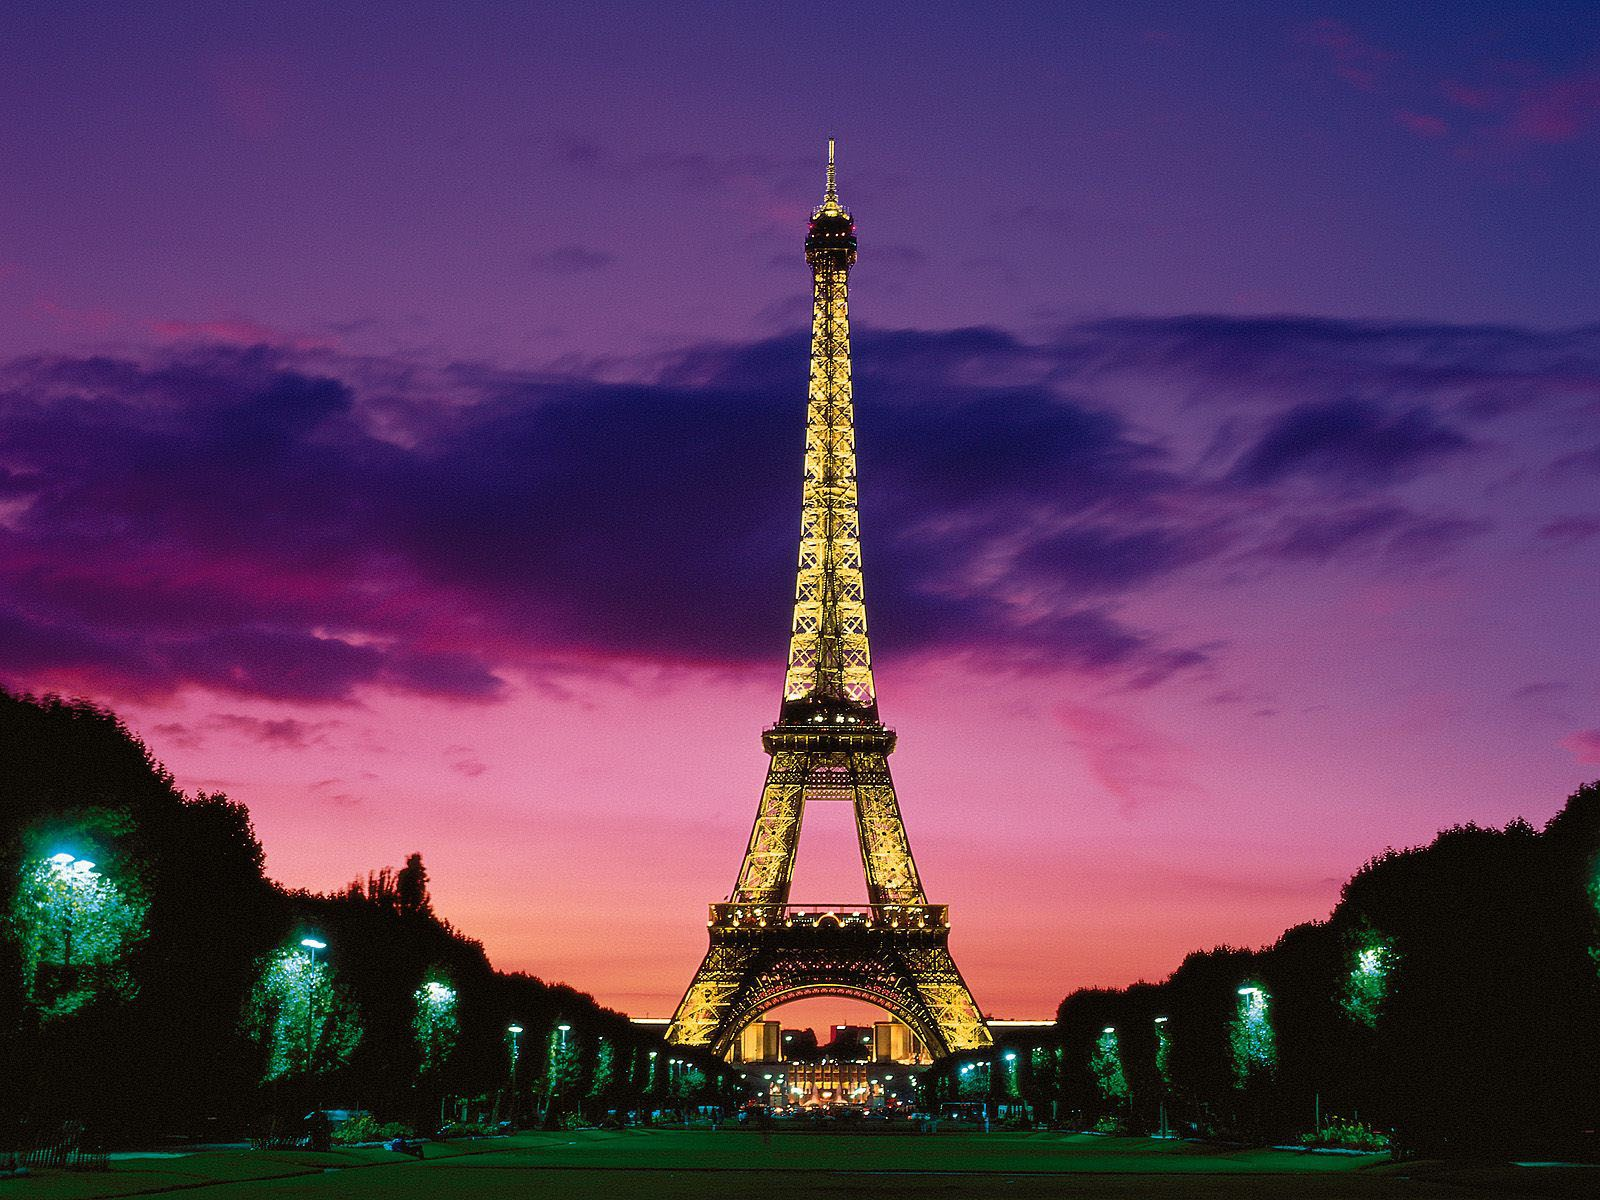 dp wallpaper menara eiffel download - dp wallpaper menara eiffel